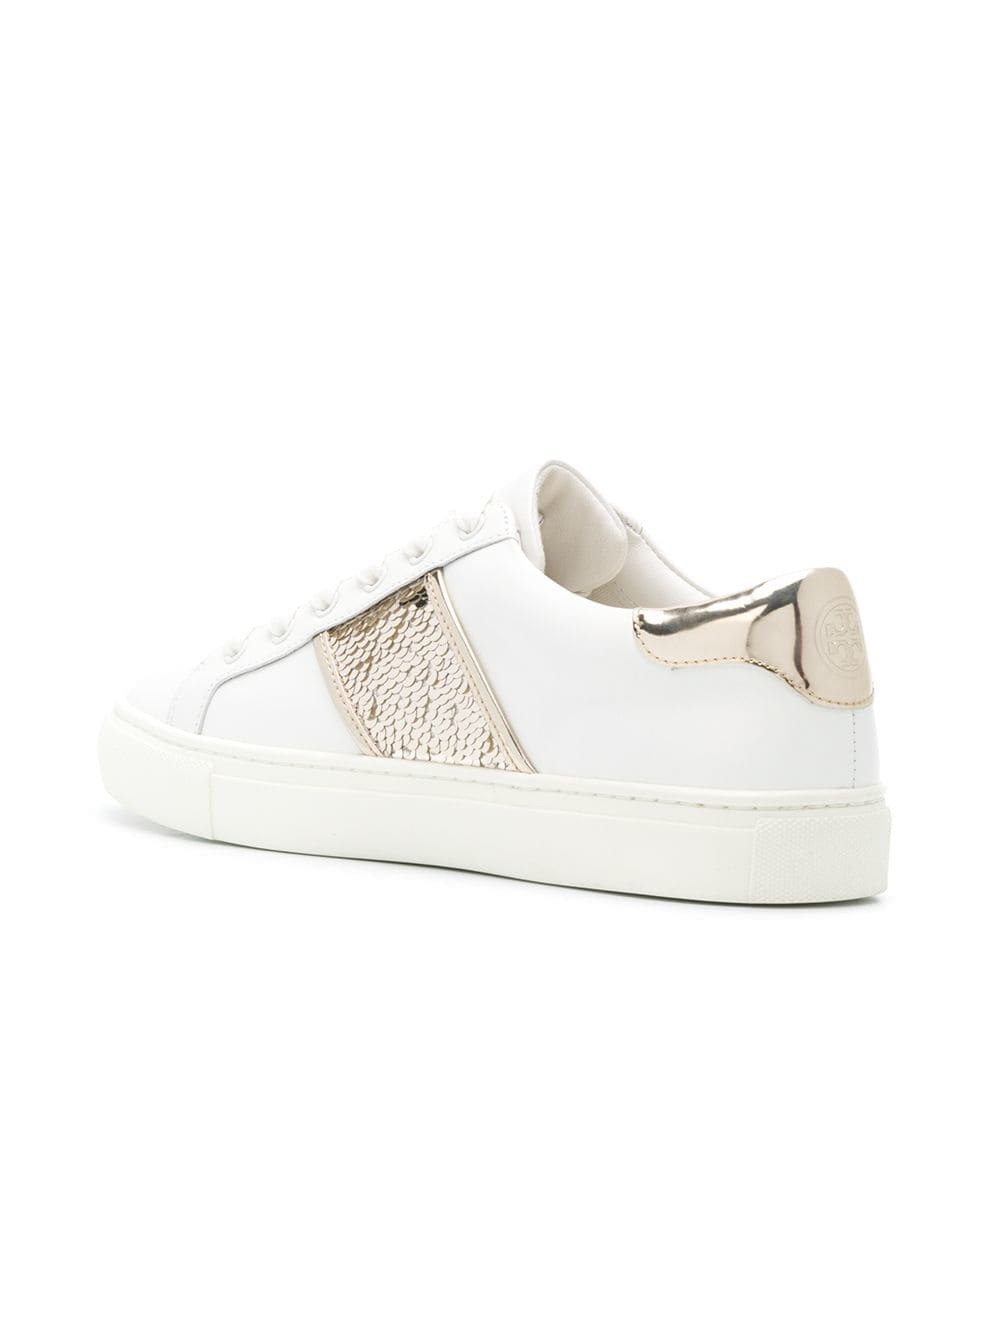 7142dc8ab53 Tory Burch Carter Sequin Sneakers